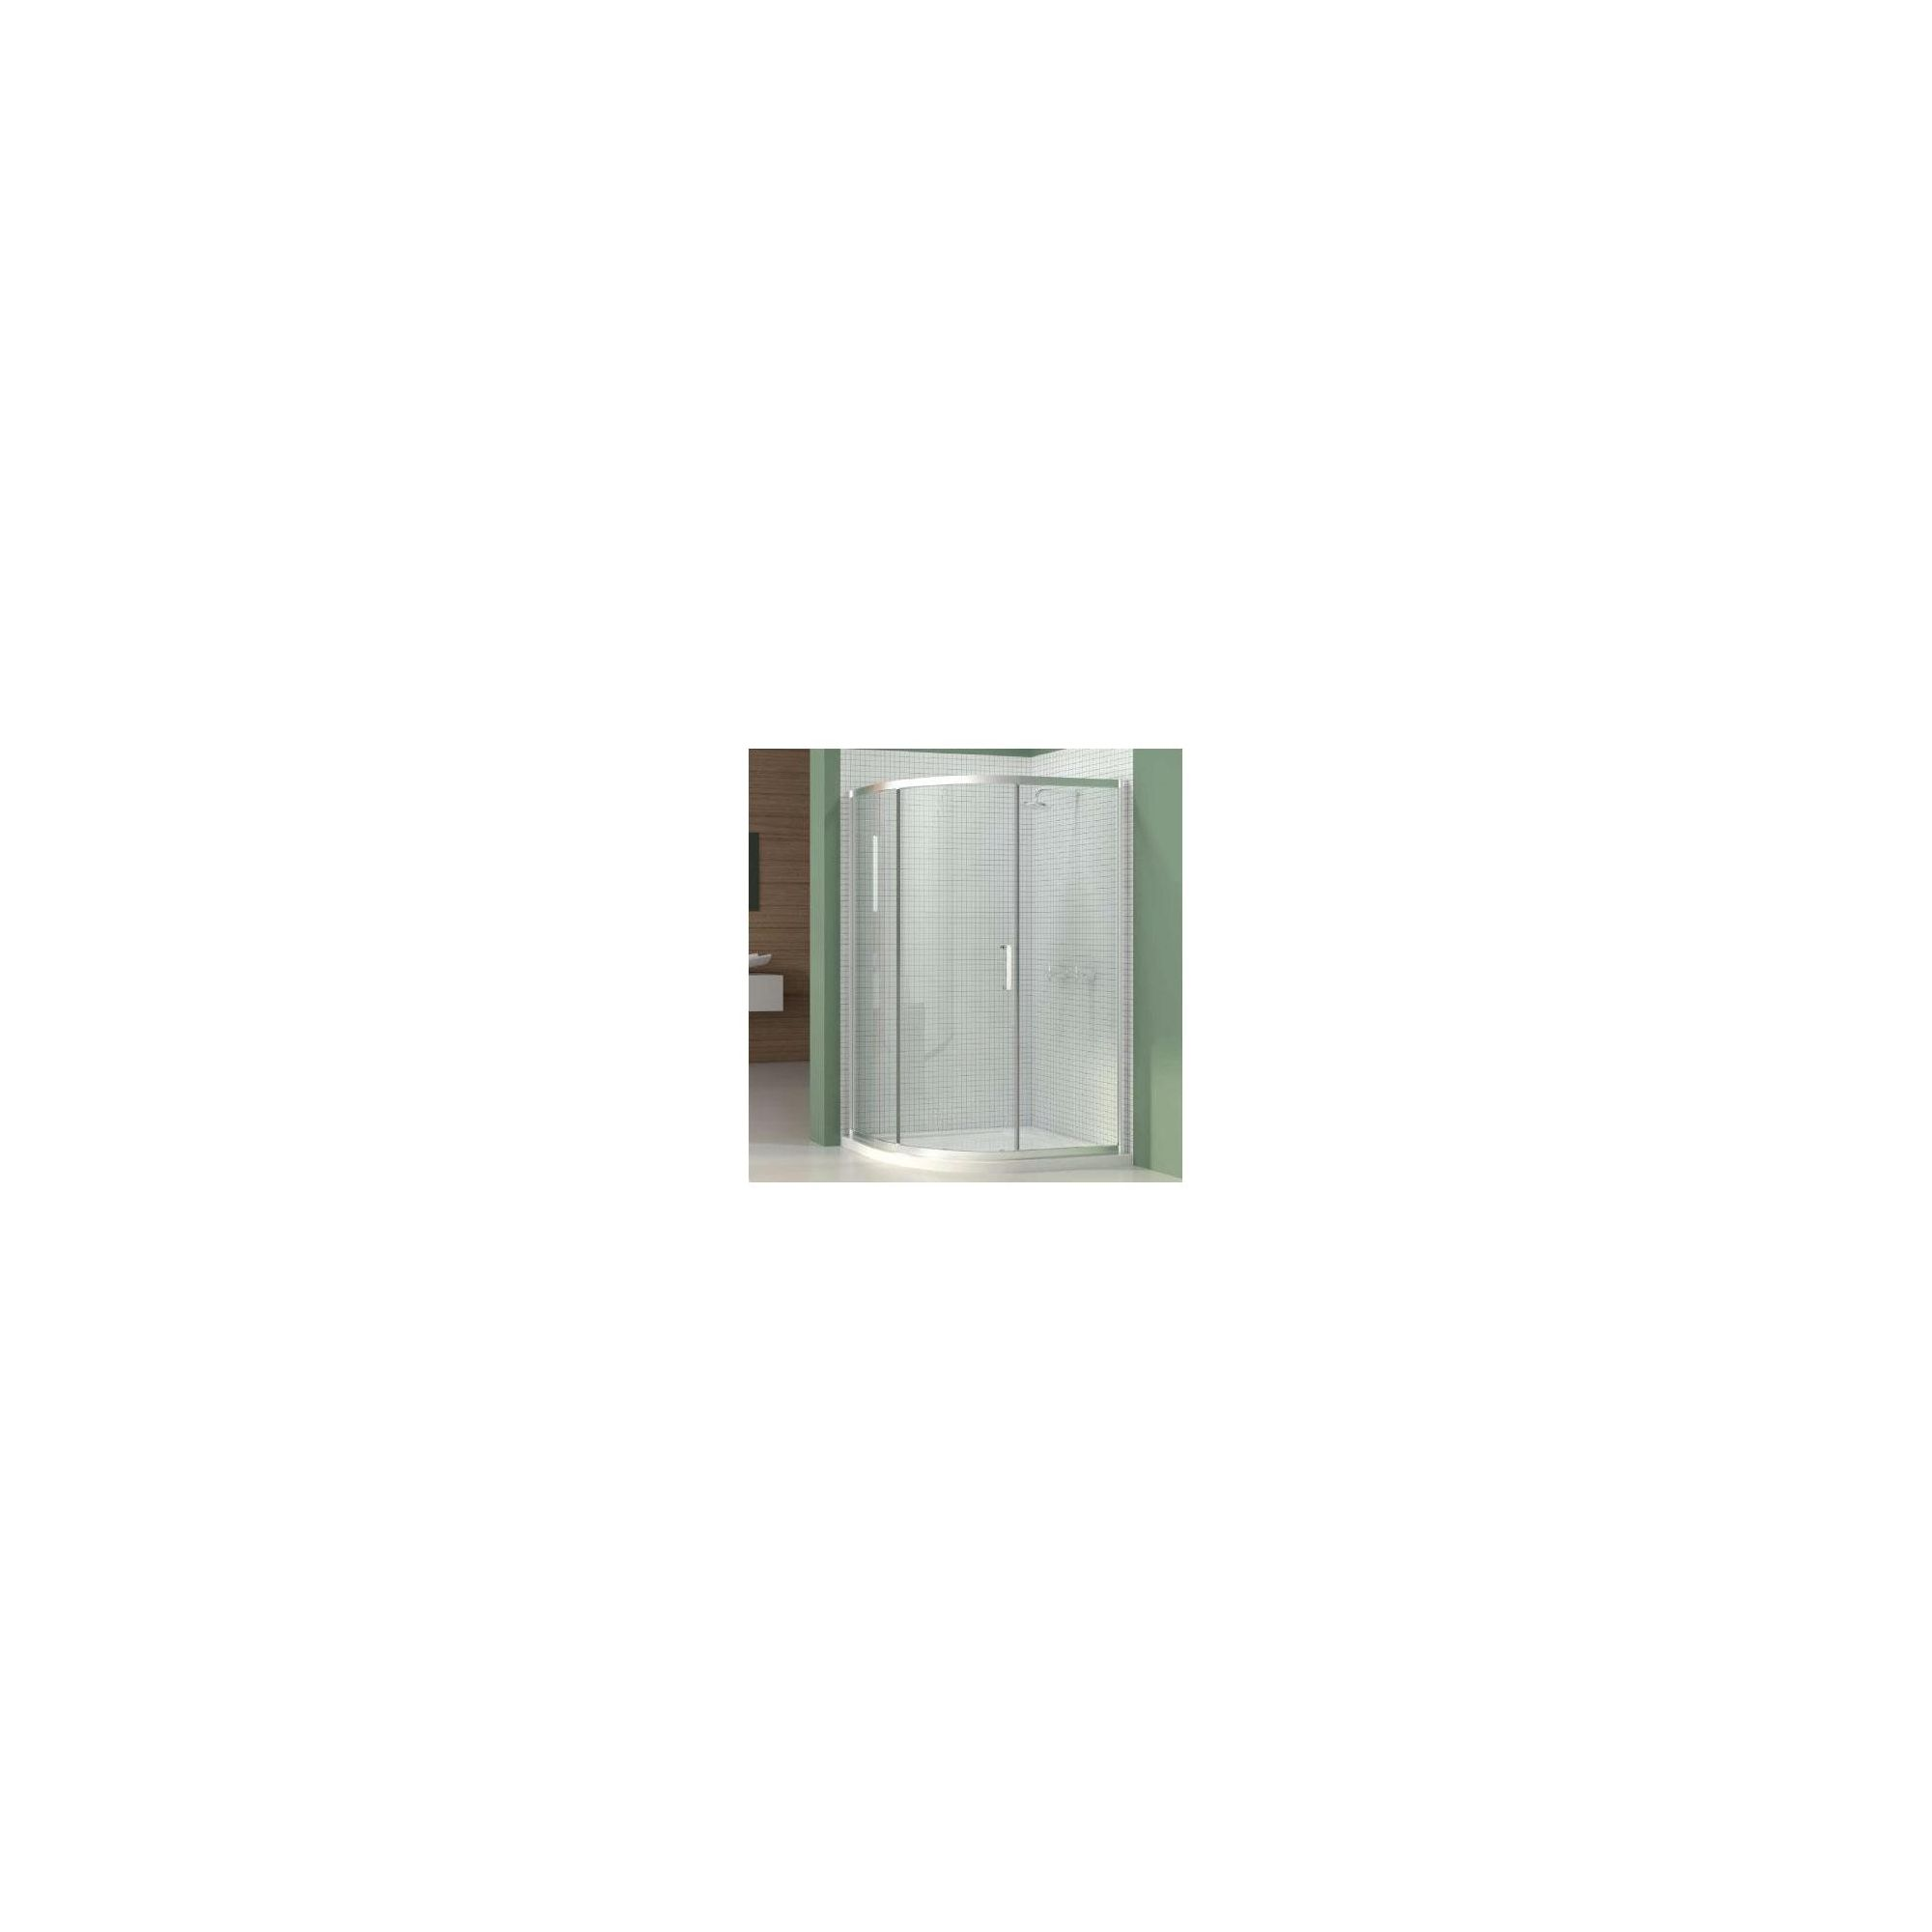 Merlyn Vivid Six Offset Quadrant Shower Enclosure, 1200mm x 900mm, Left Handed, Low Profile Tray, 6mm Glass at Tesco Direct